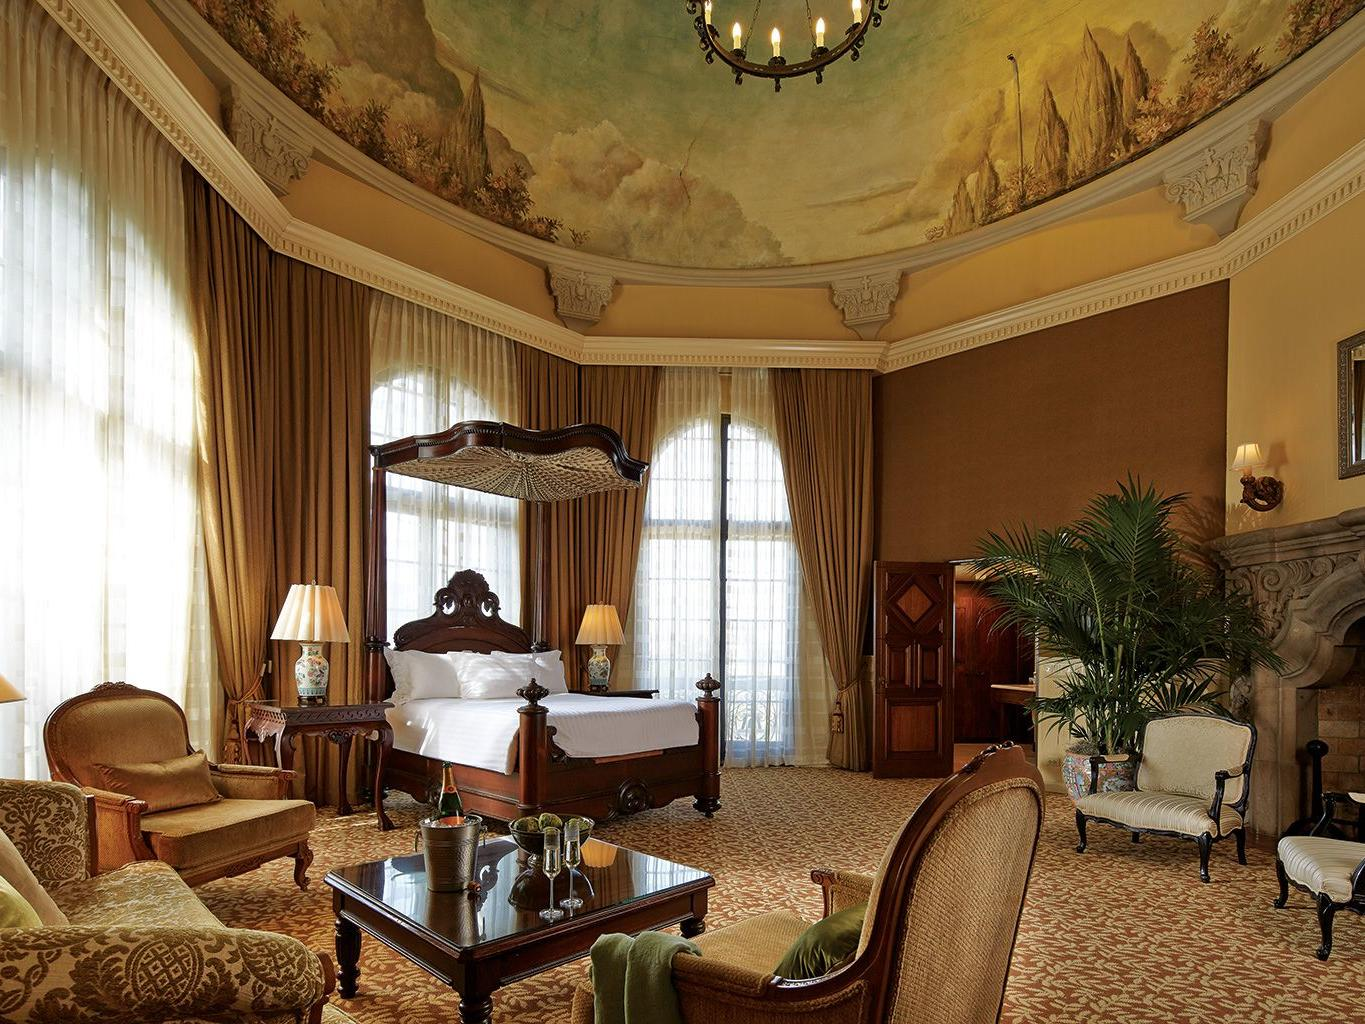 large circular room with canopy bed, seating area and fireplace